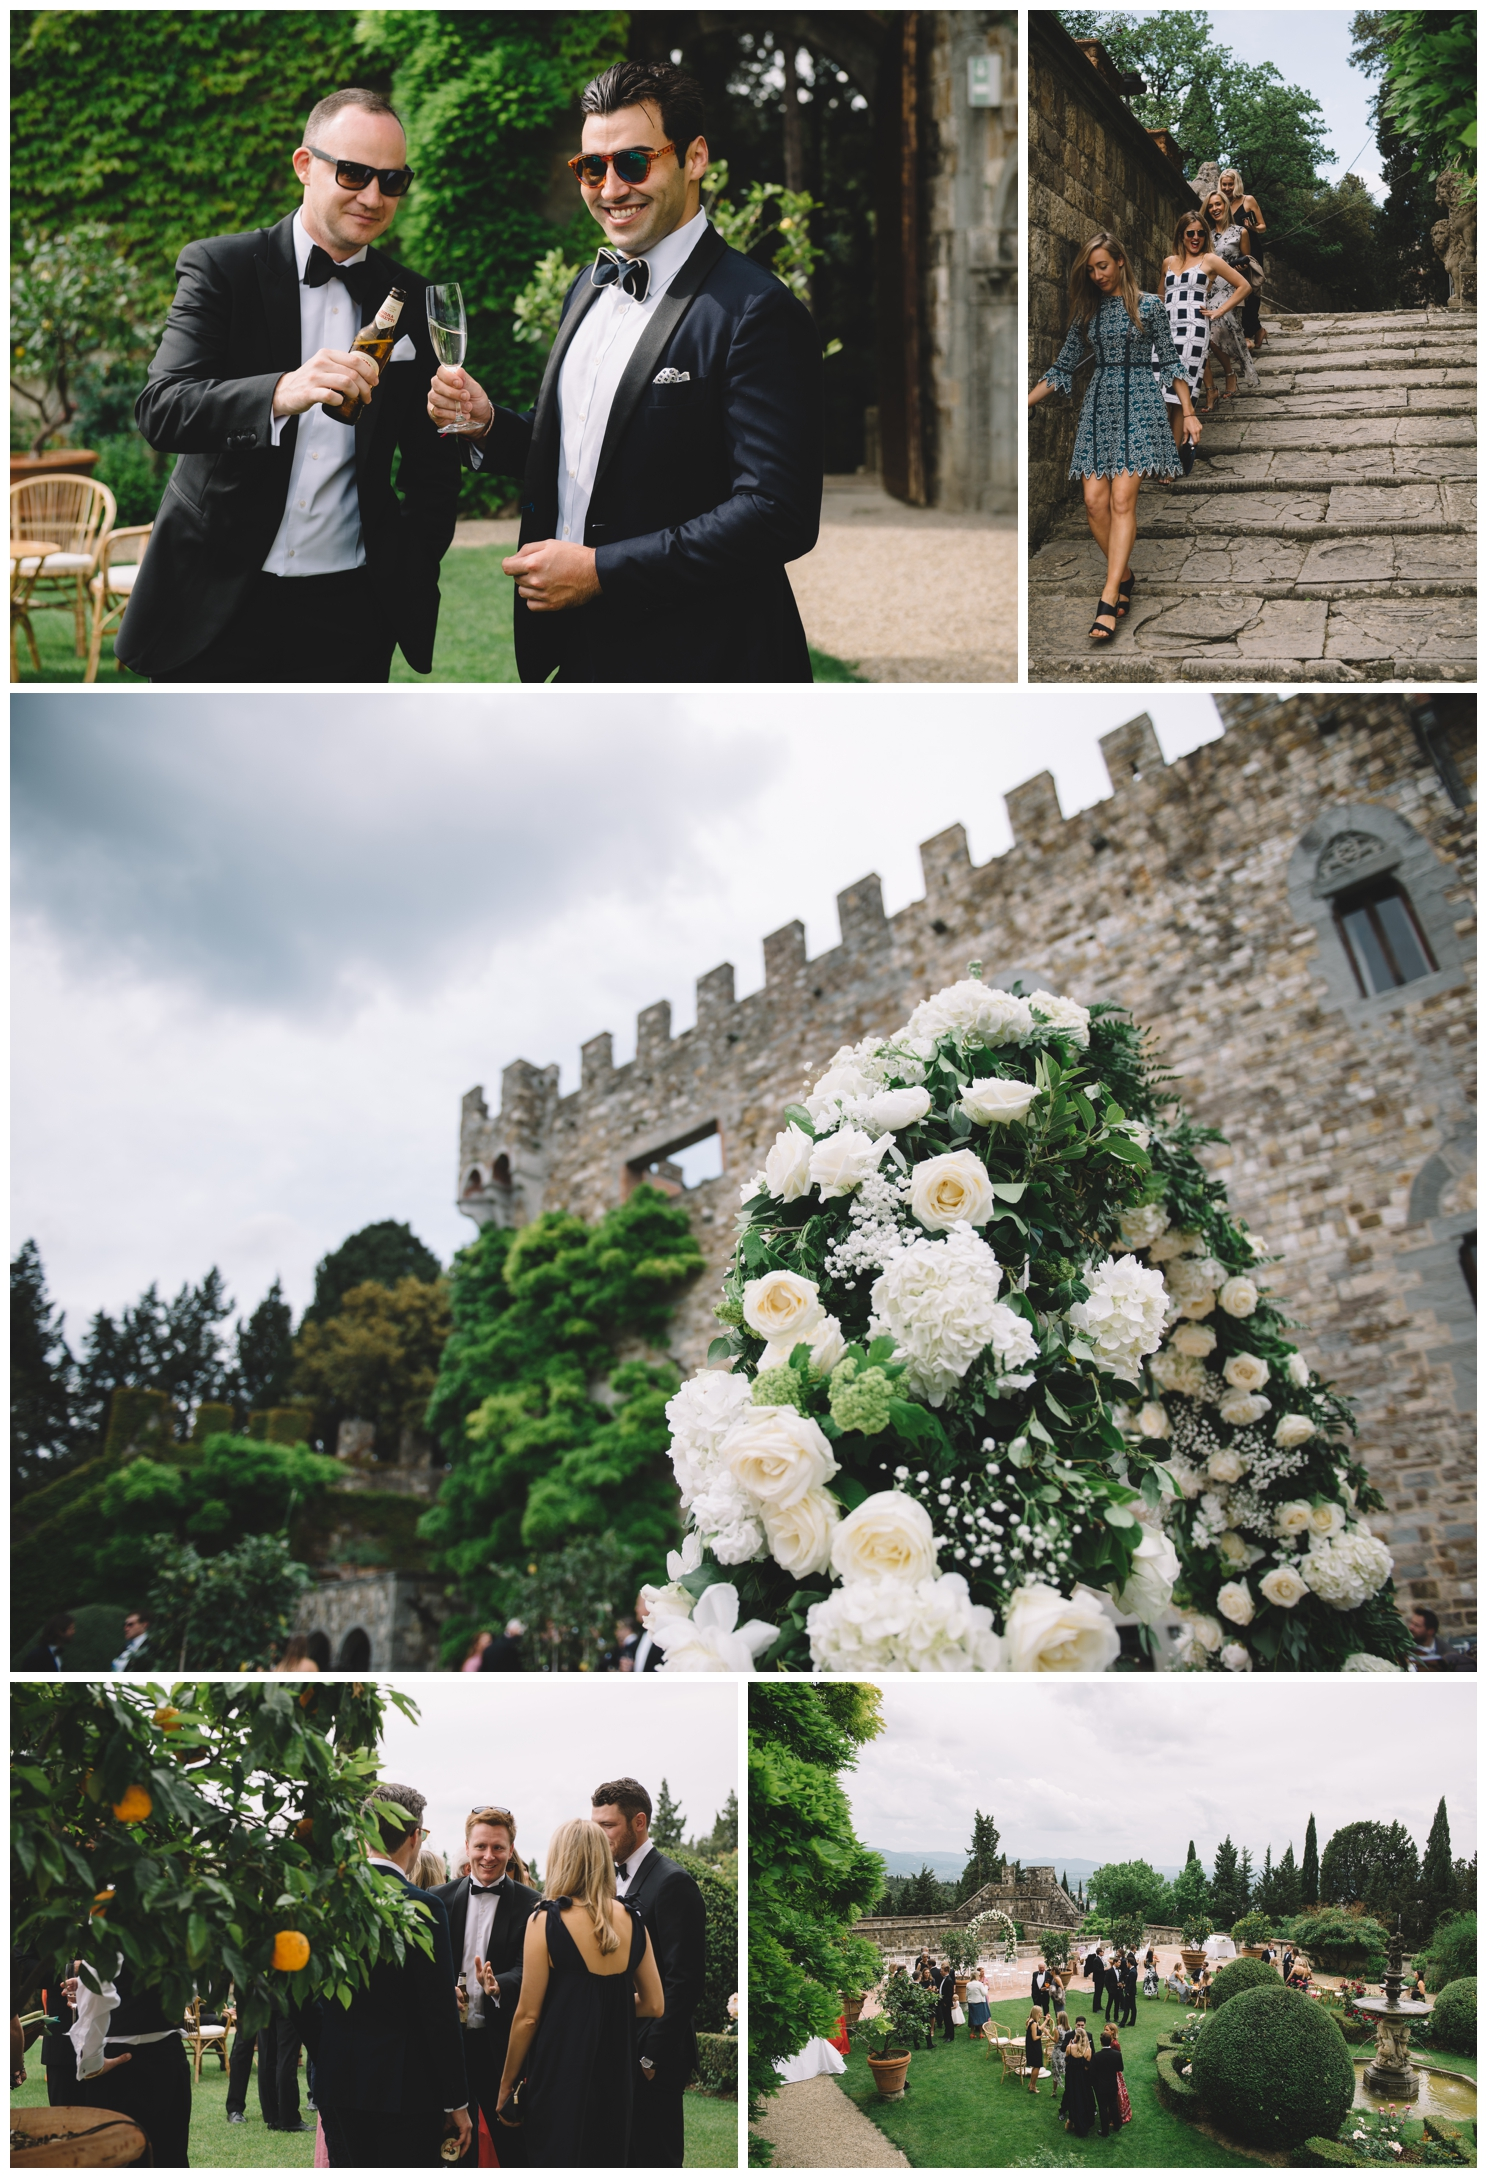 Wedding Photographer in Tuscany, Wedding Photographer in Florence, Wedding Photographer Siena, Italian Wedding Photographer, Wedding in Tuscany, Wedding in Florence, Wedding in Italy